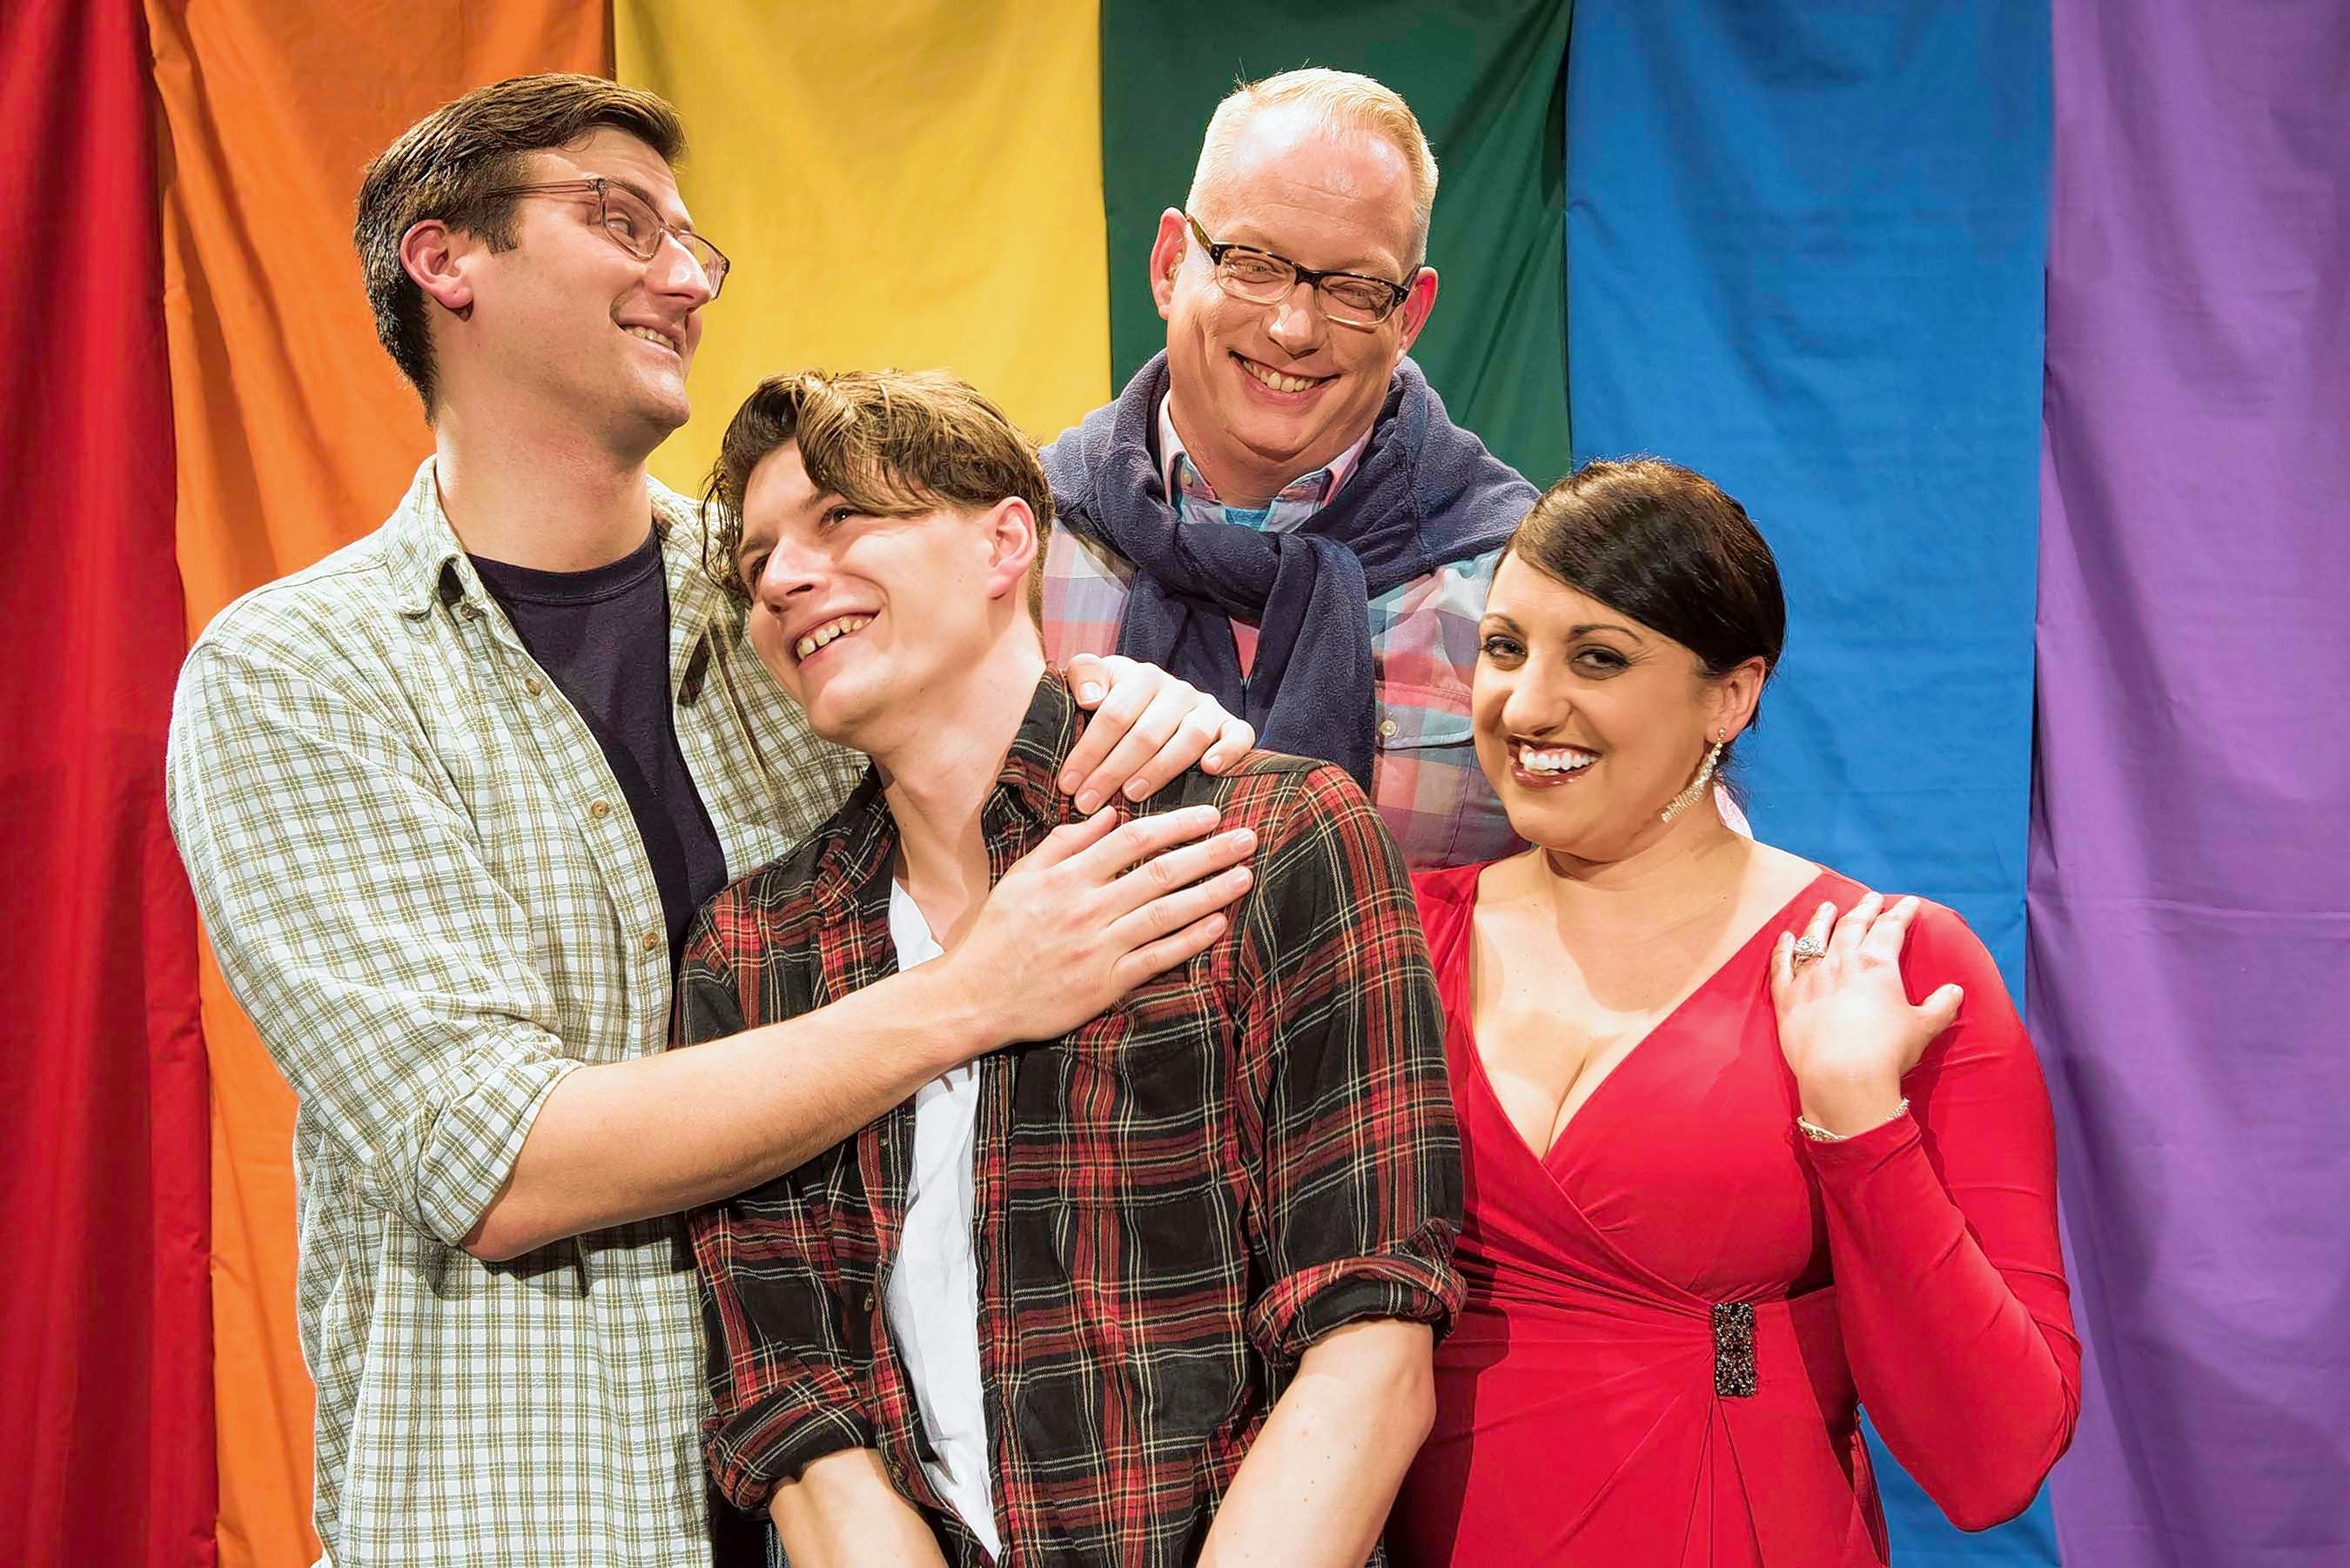 Seth Stearns, Jeremy Osinga, David Waters and Tricia Beth Burns star in the Jackson County Stage Company's production of 'Almost Identical,' which plays April 13 to 22 at the Varsity Center in Carbondale. The show, written and directed by Vincent Rhomberg, tells the story of twins, one gay and one straight, that accidentally begin to inhabit each other's lives in a development that builds a hilarious house of cards. Tickets are now available at stagecompany.org.